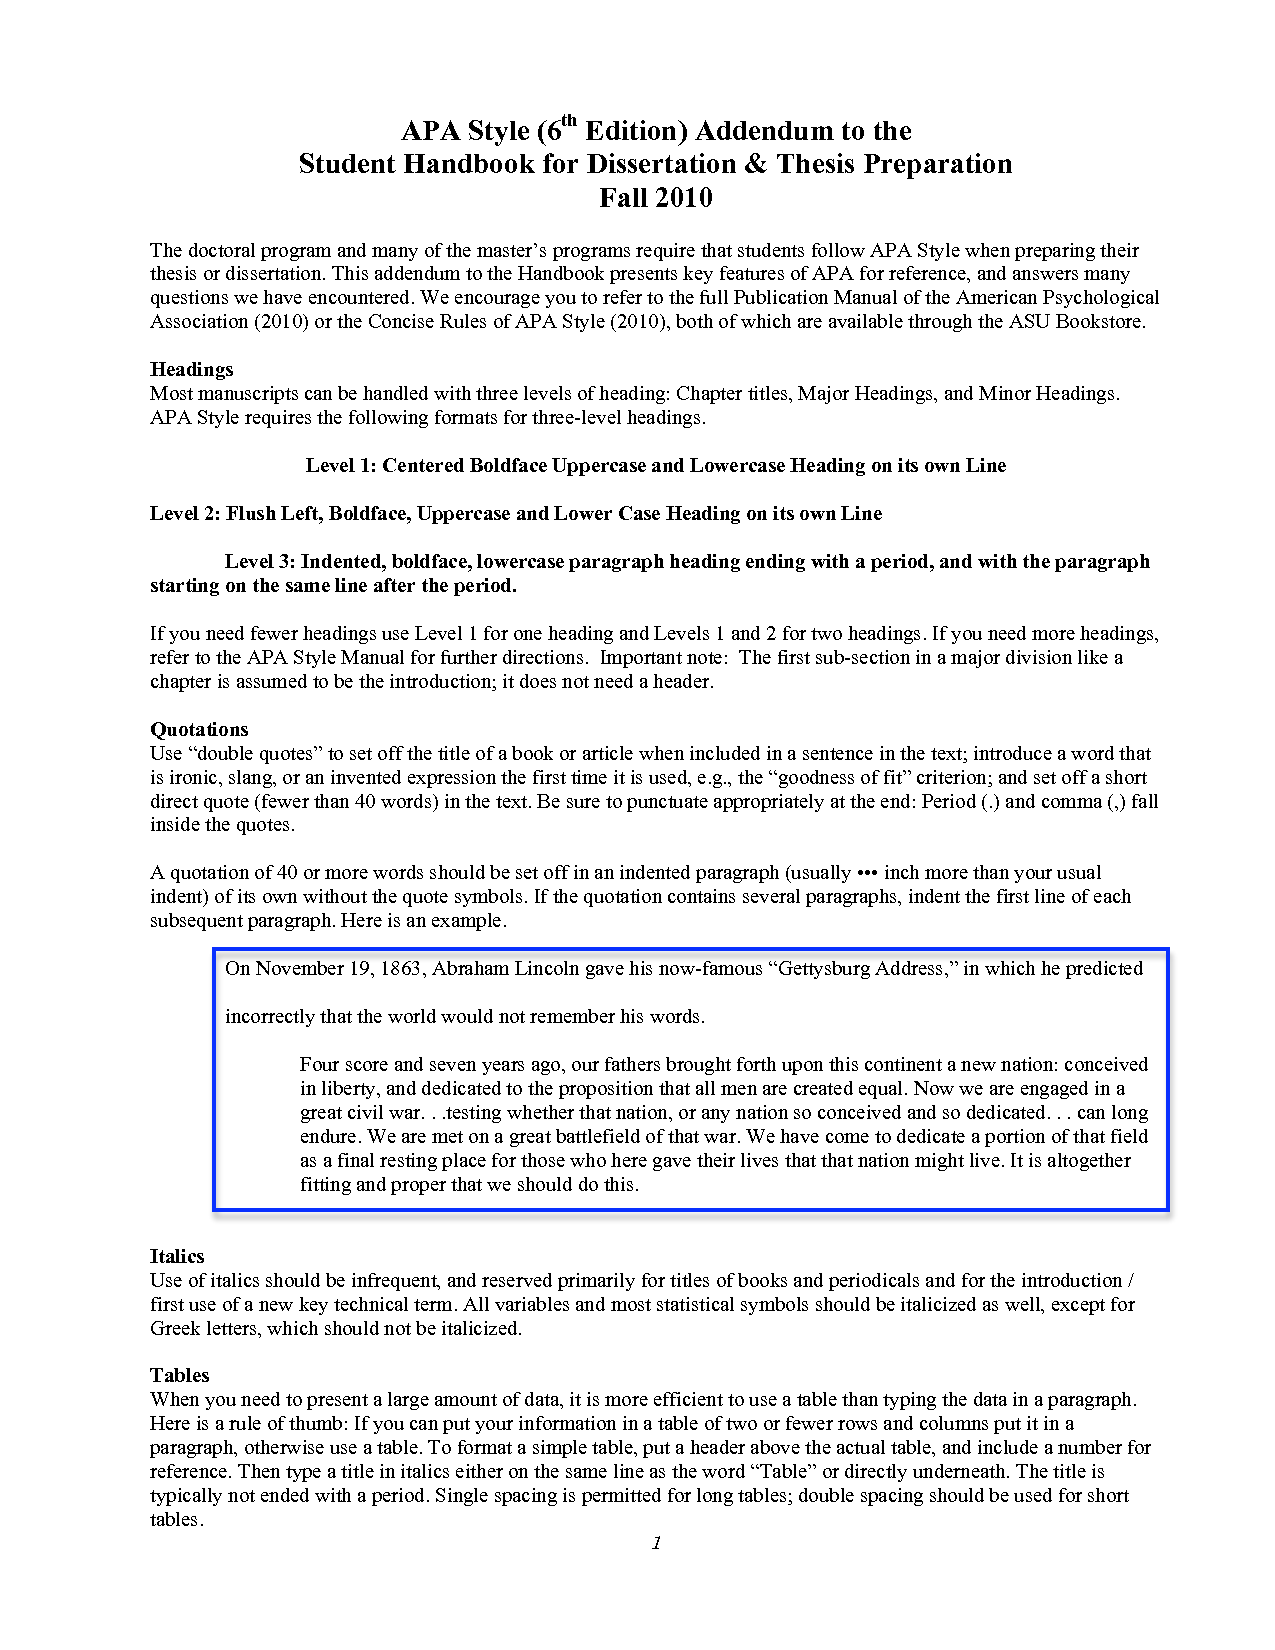 004 Apa Format Research Paper Example 6th Edition Sample Colesecolossus Elegant Header Archaicawful Free 2015 Full